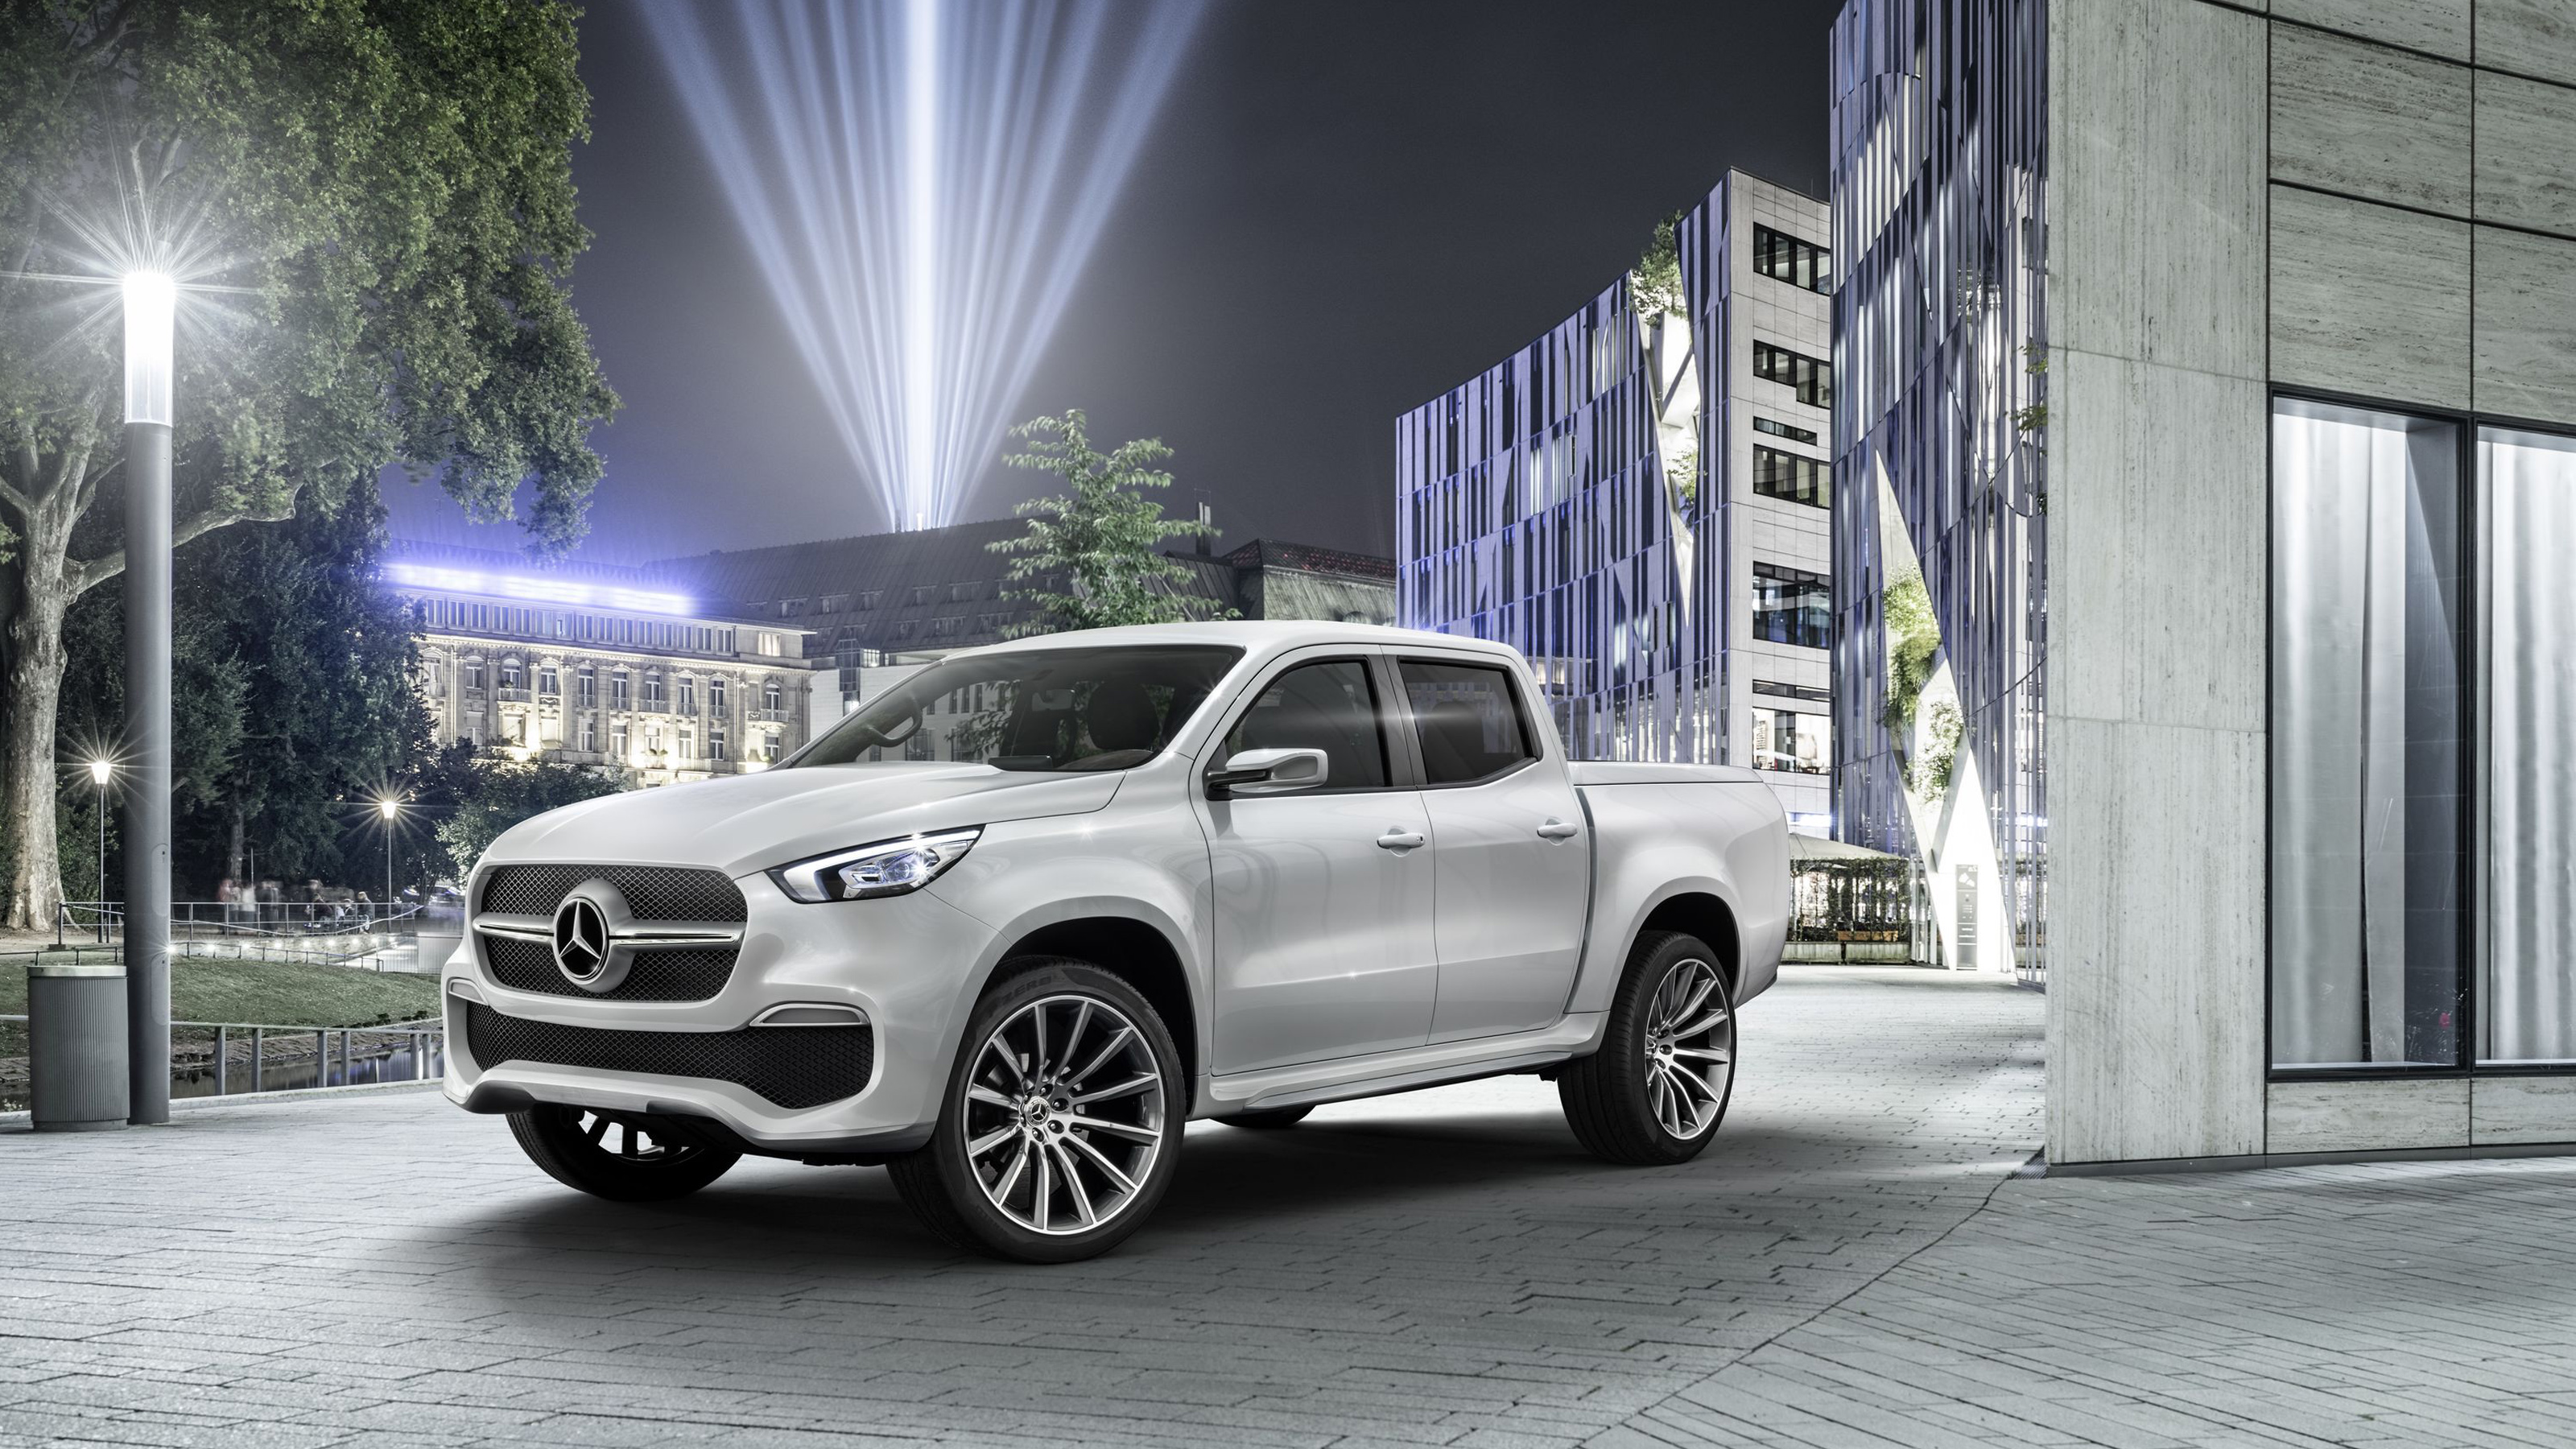 2017 mercedes benz x class pickup truck wallpaper hd car for Mercedes benz trucks